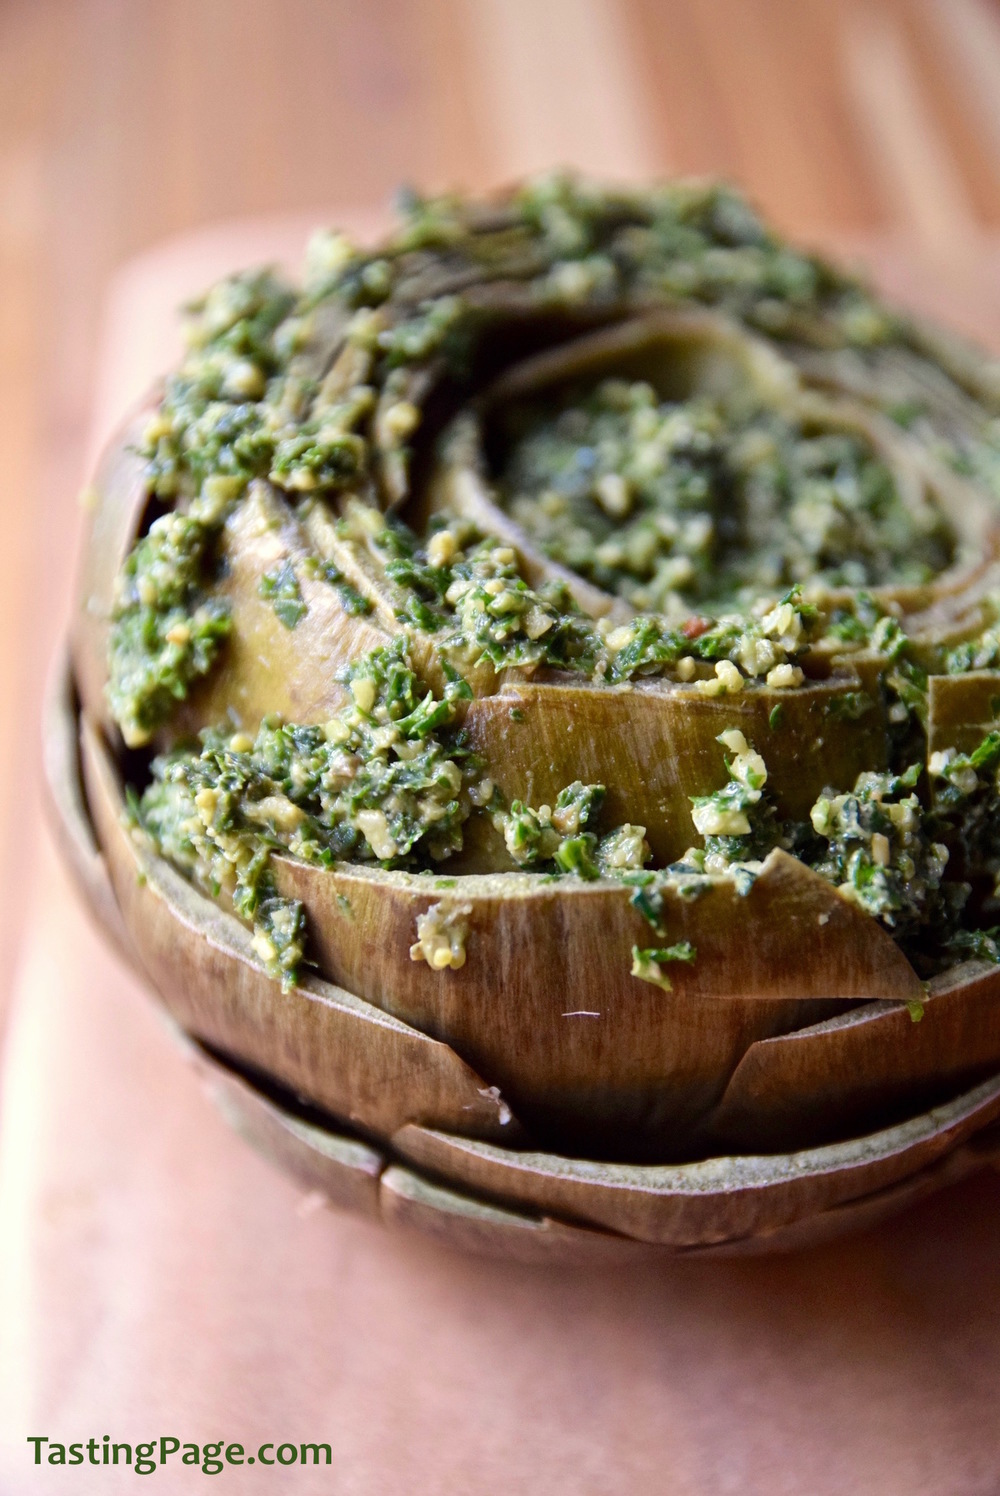 Anchovy Parsley Pesto Stuffed Artichoke - gluten free and dairy free | TastingPage.com